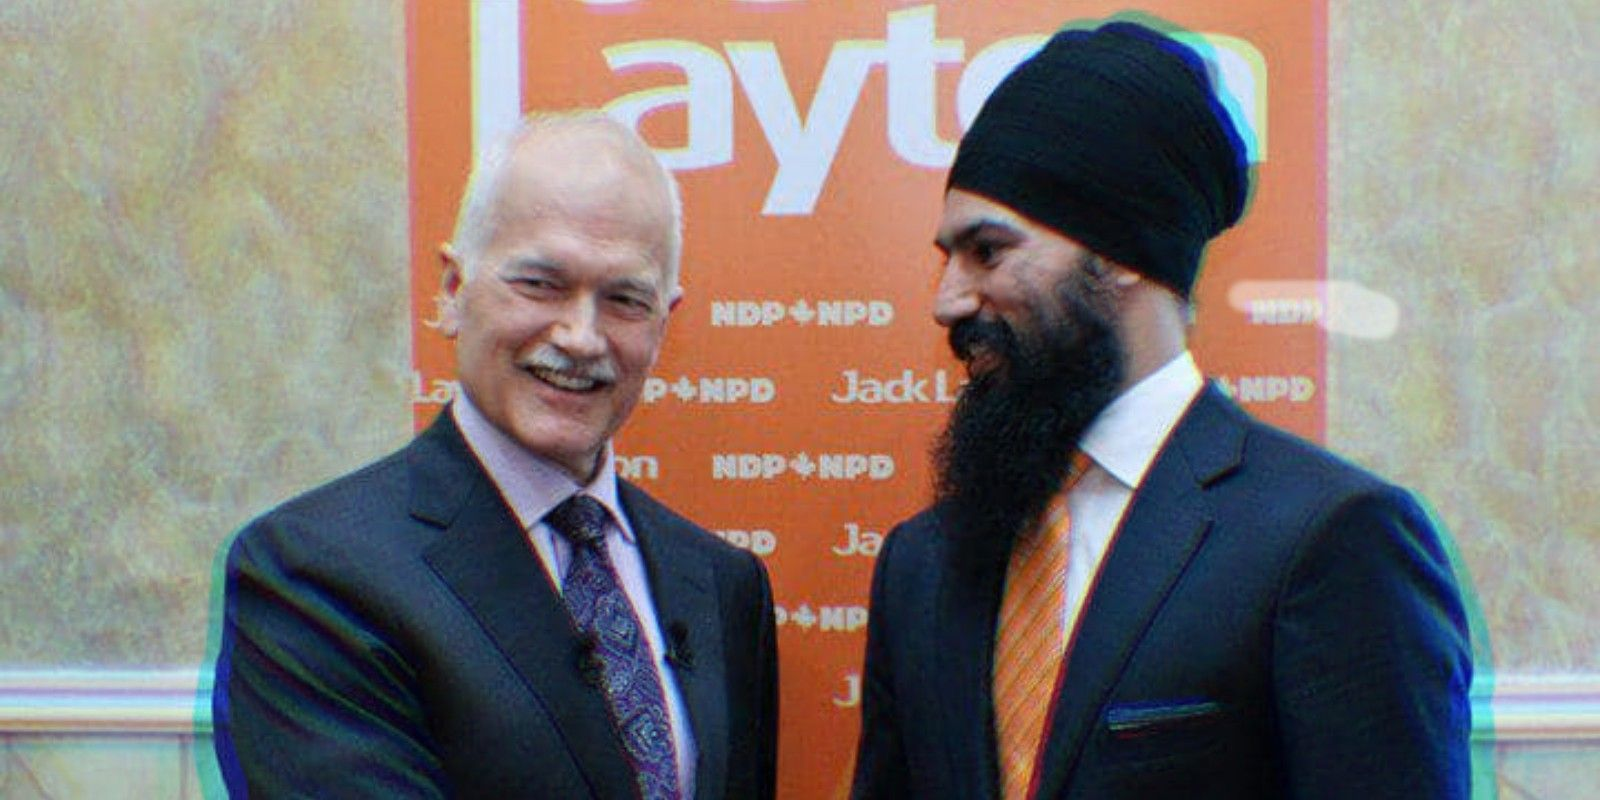 Jagmeet Singh has squandered what Jack Layton worked so hard to build